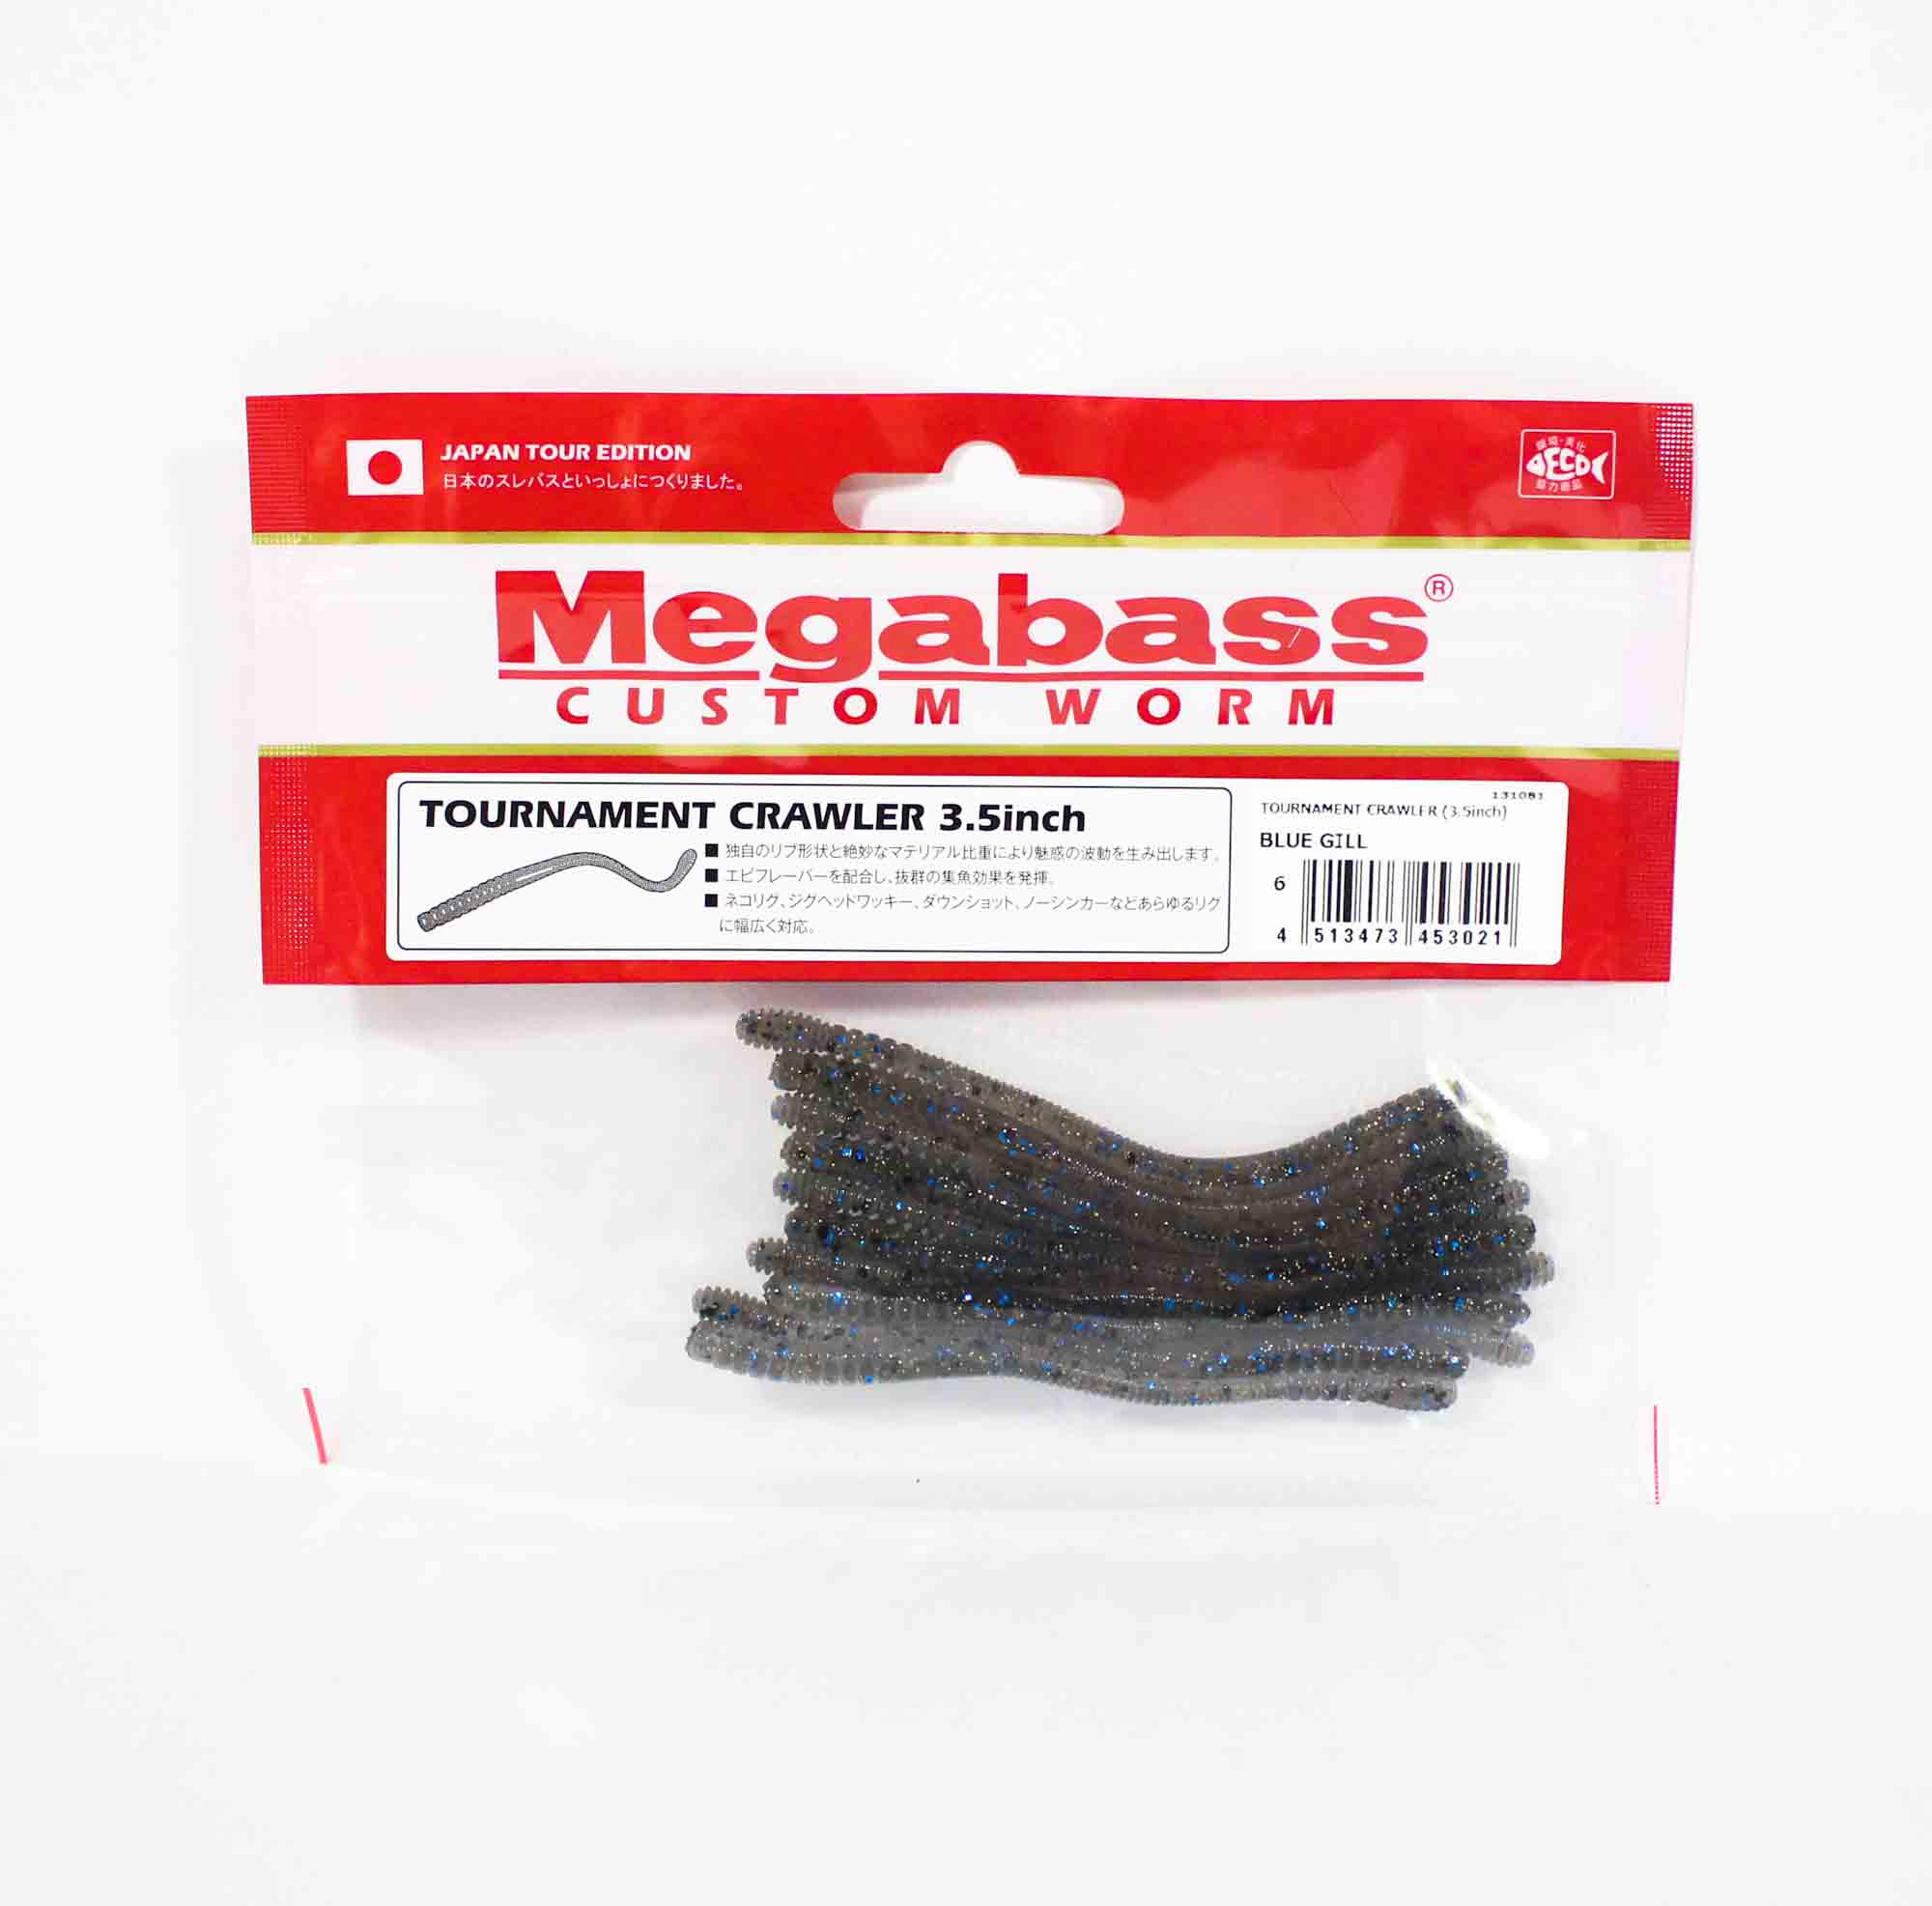 Megabass Tournament Crawler 3.5 Inch Soft Lure Blue Gill (3021)